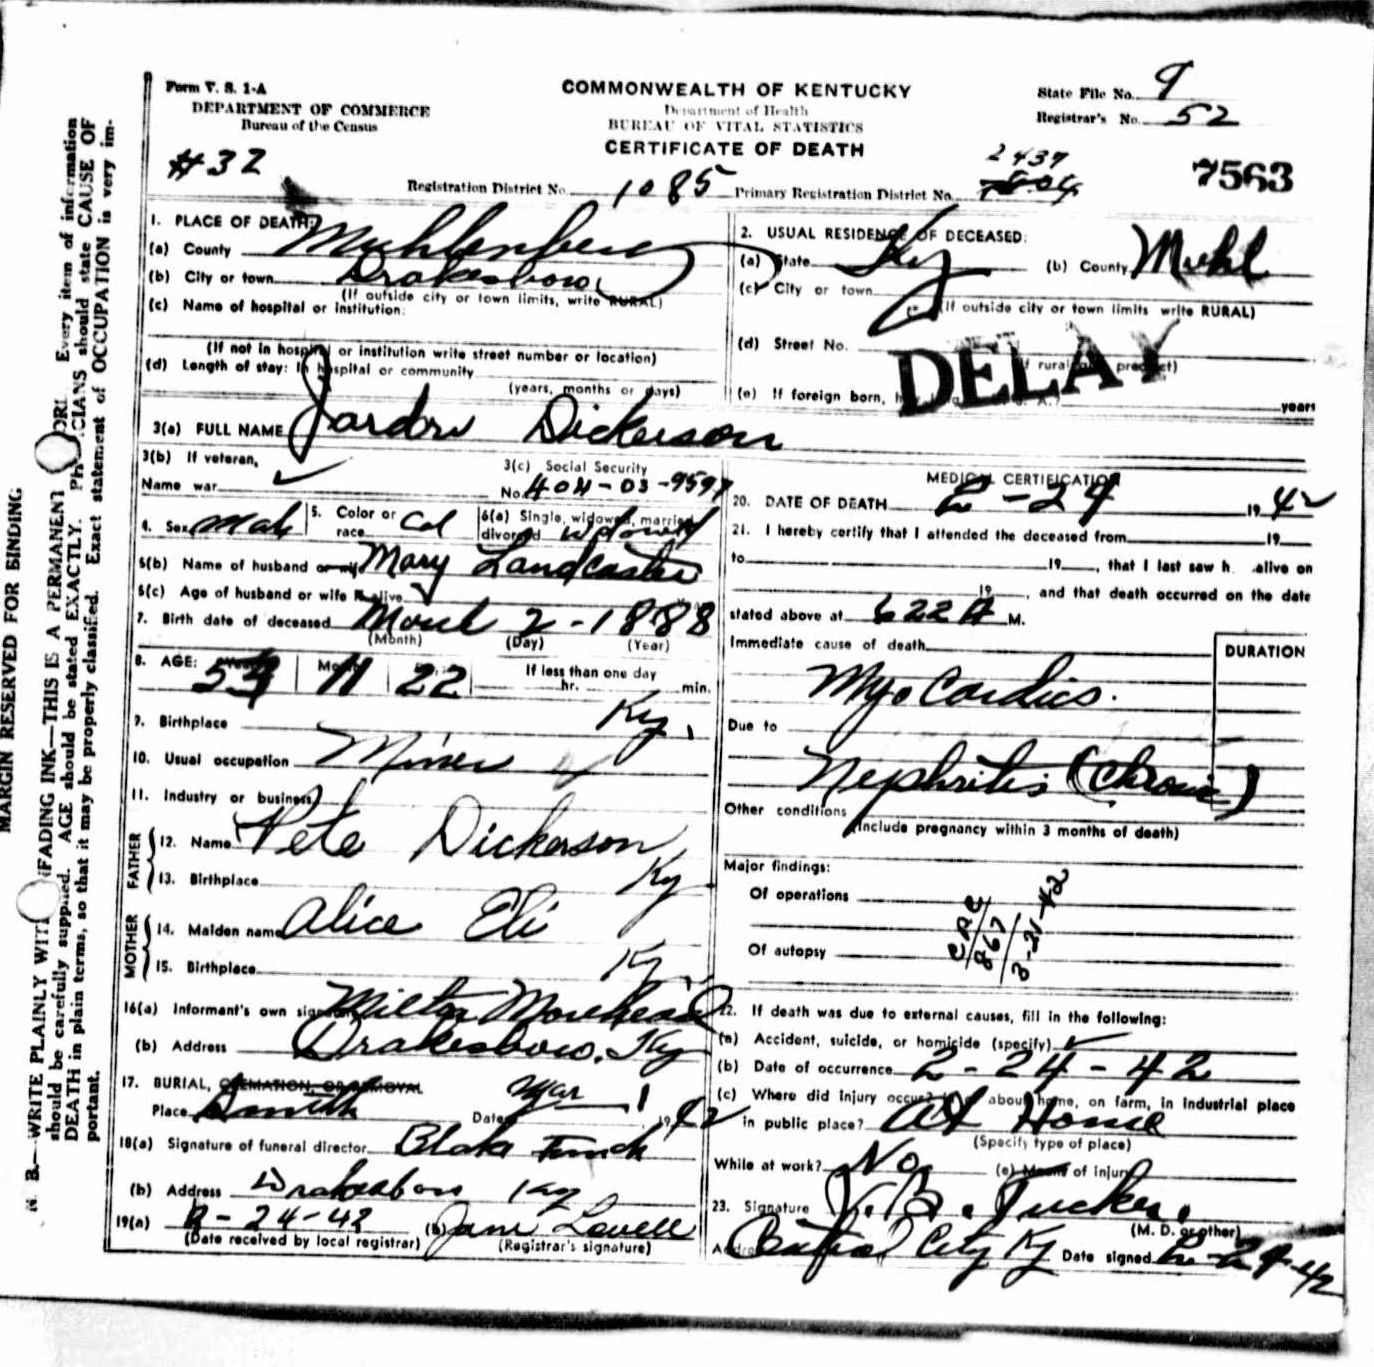 Death certificates di kentucky death certificate 7563 1betcityfo Images